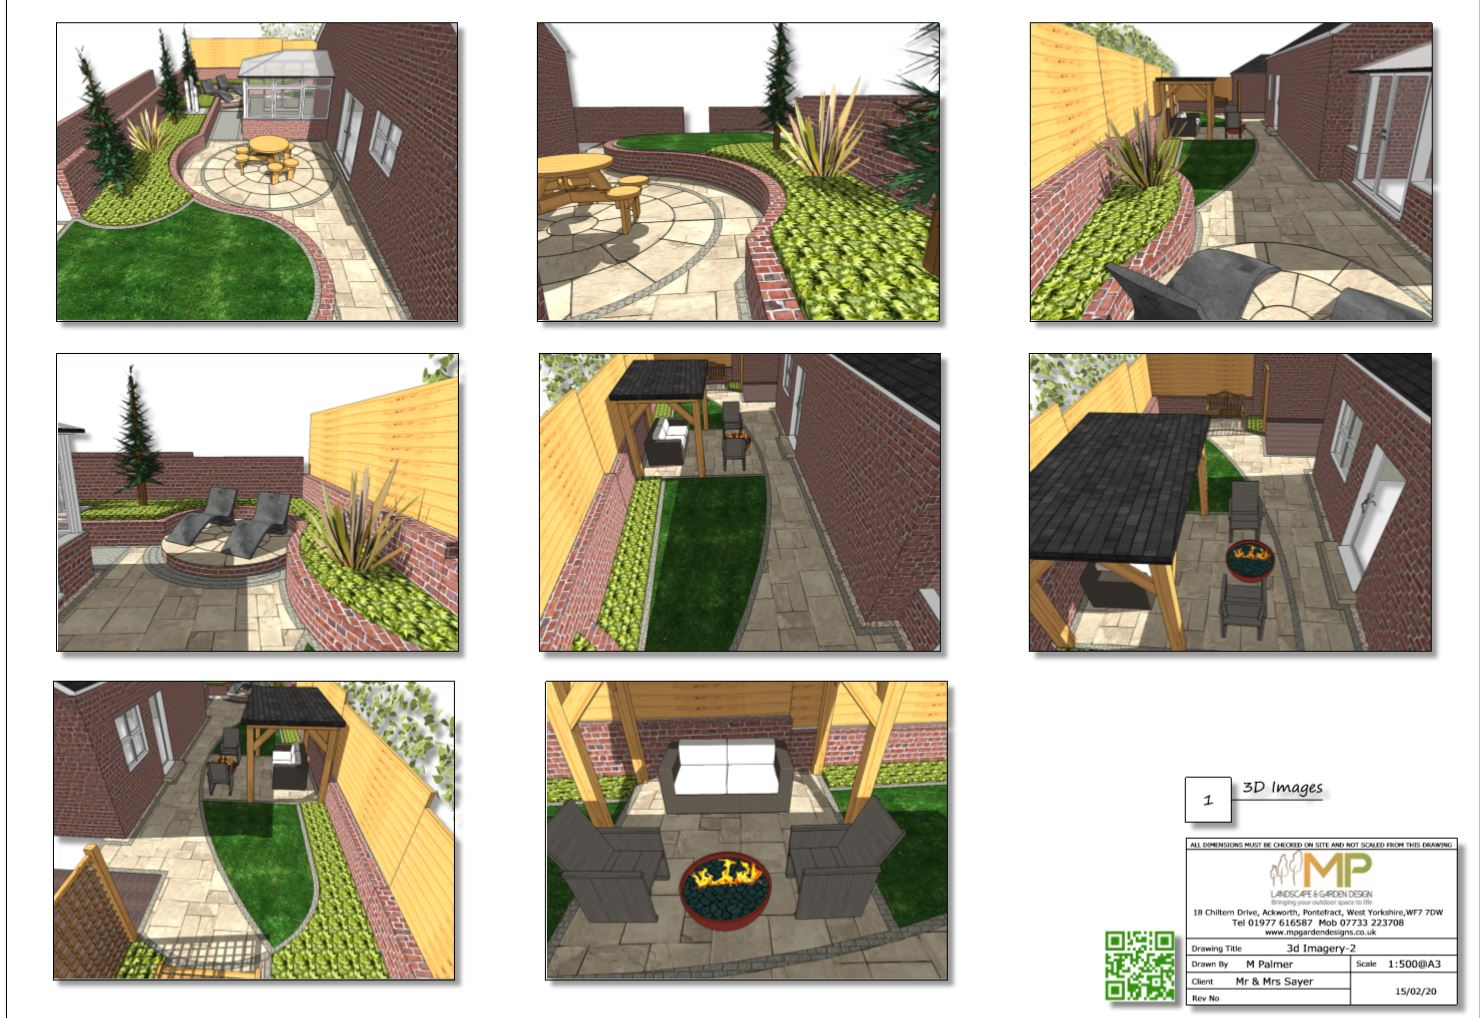 6. Colour concept 3D images for a property in Castelford.